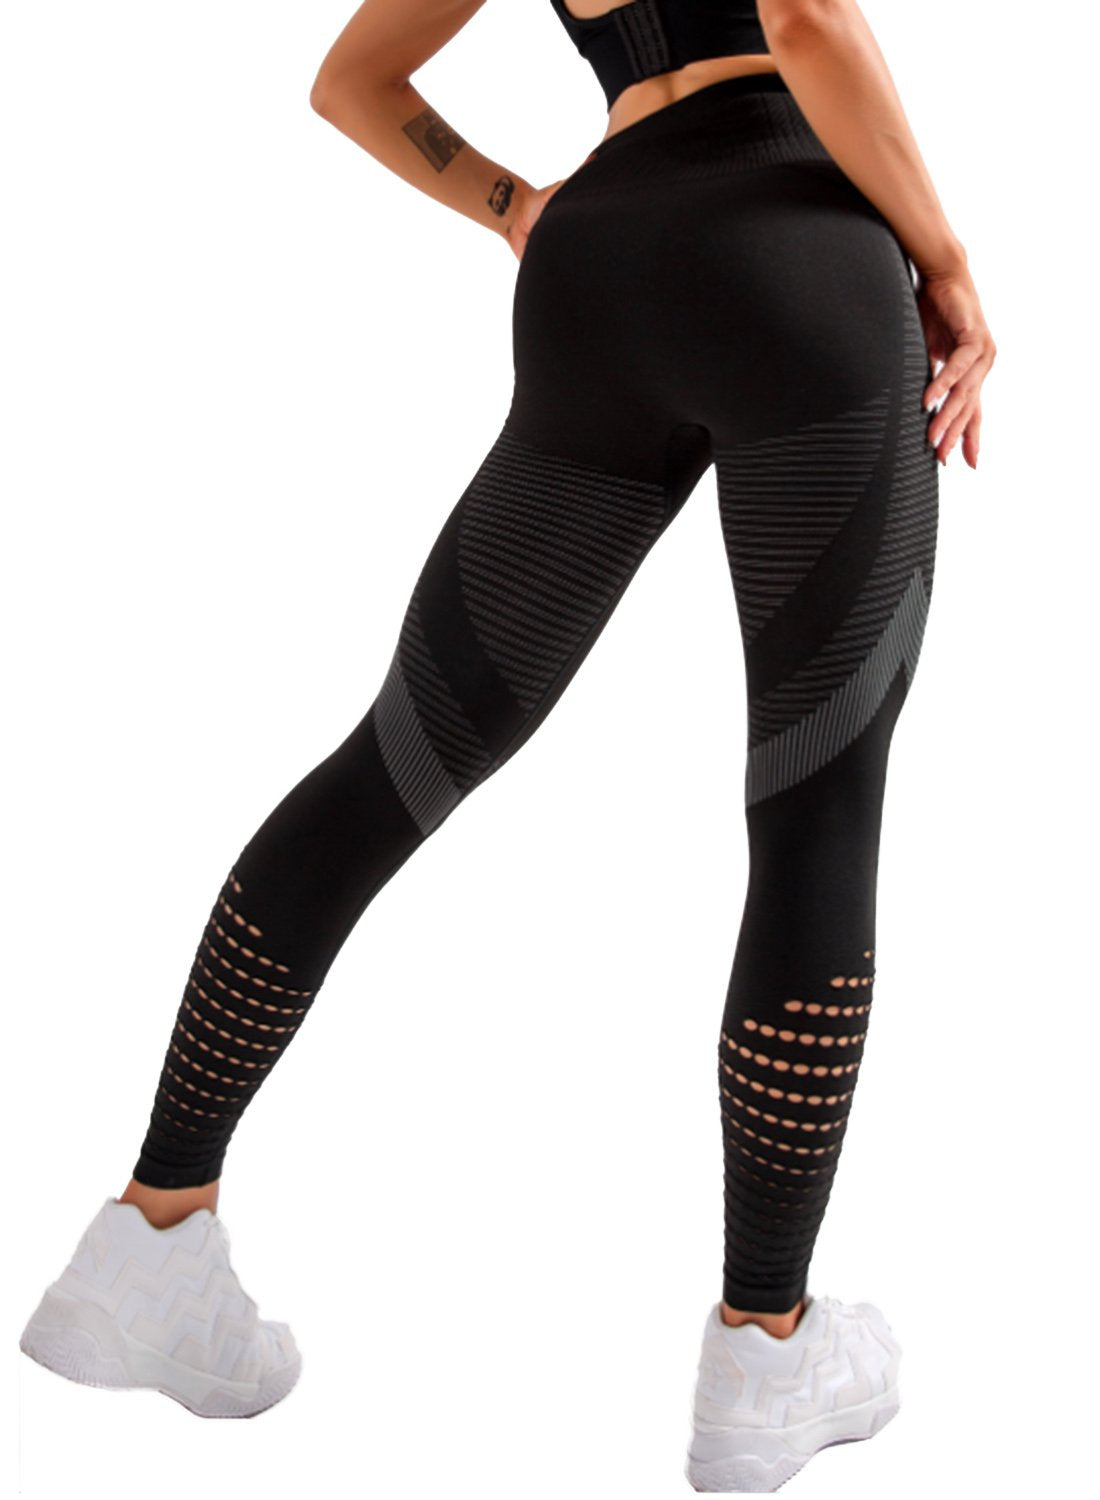 Women's Hollow Out Breathable Seamless Yoga Pants-JustFittoo